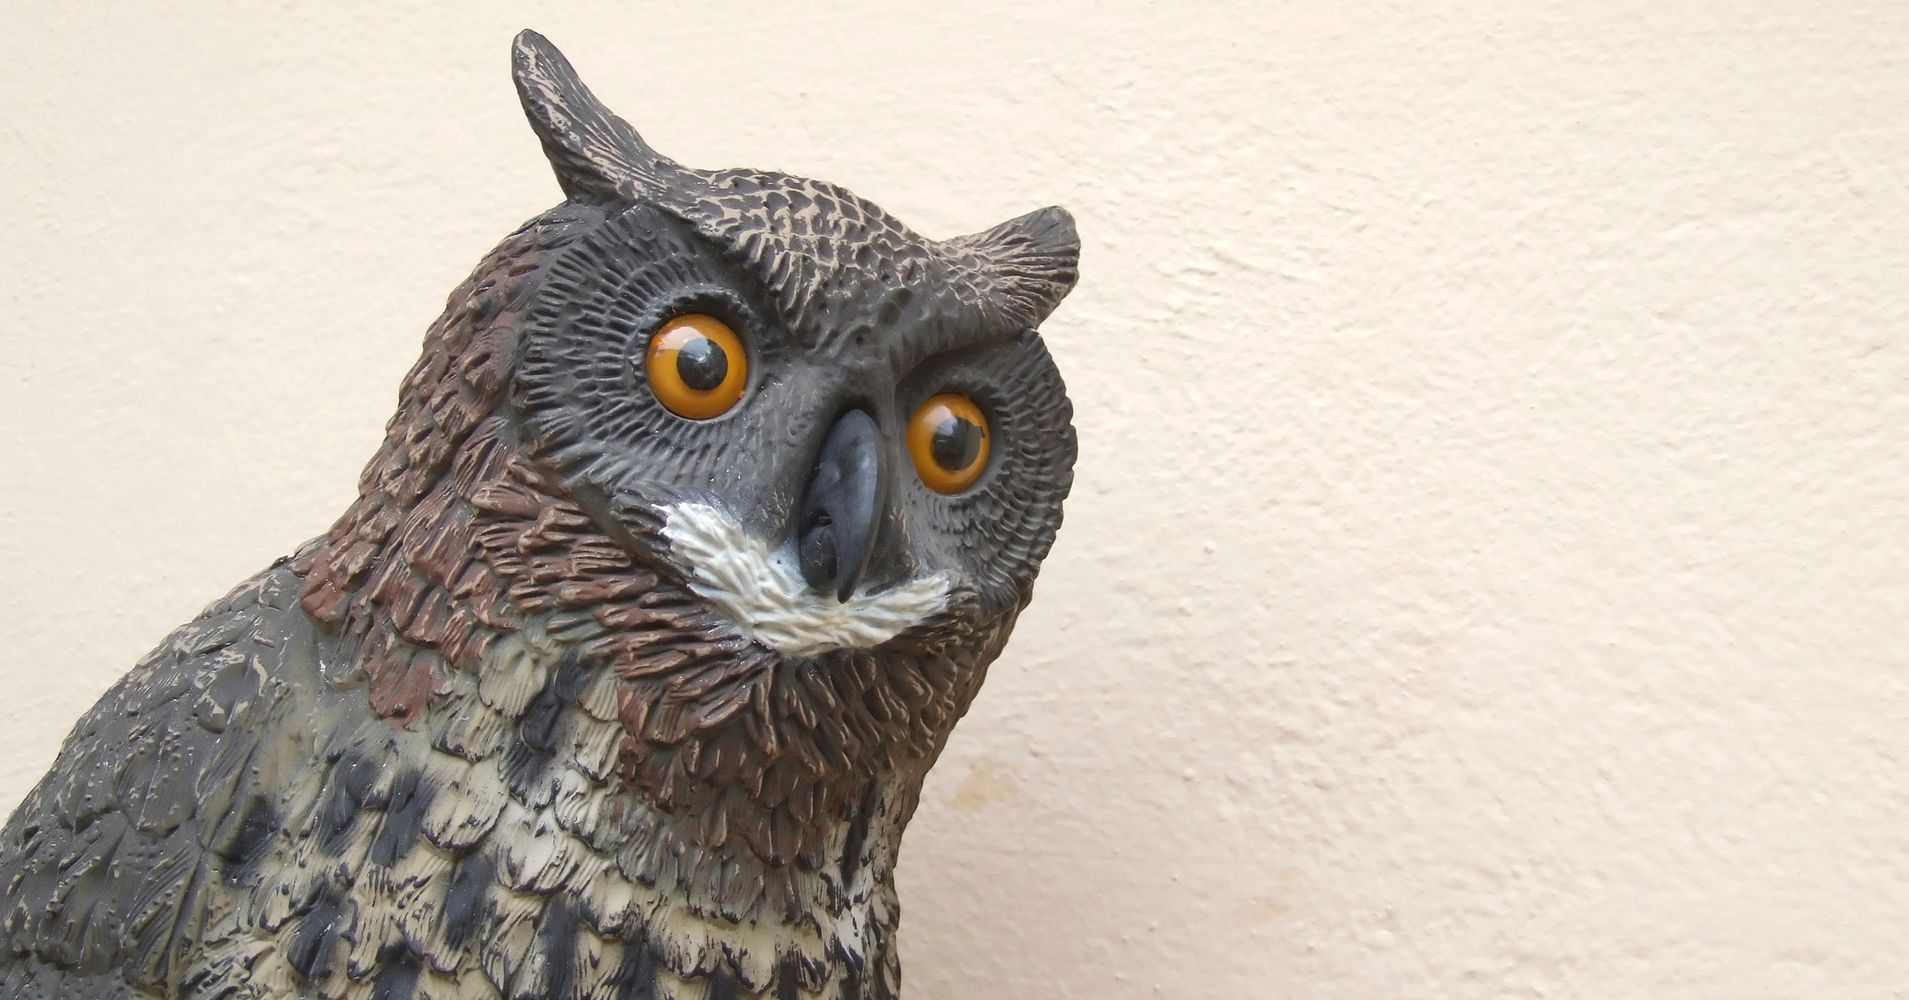 Owl lawn ornaments - This Adorable Little Girl S Friendship With An Owl Lawn Ornament Is A Hoot Huffpost